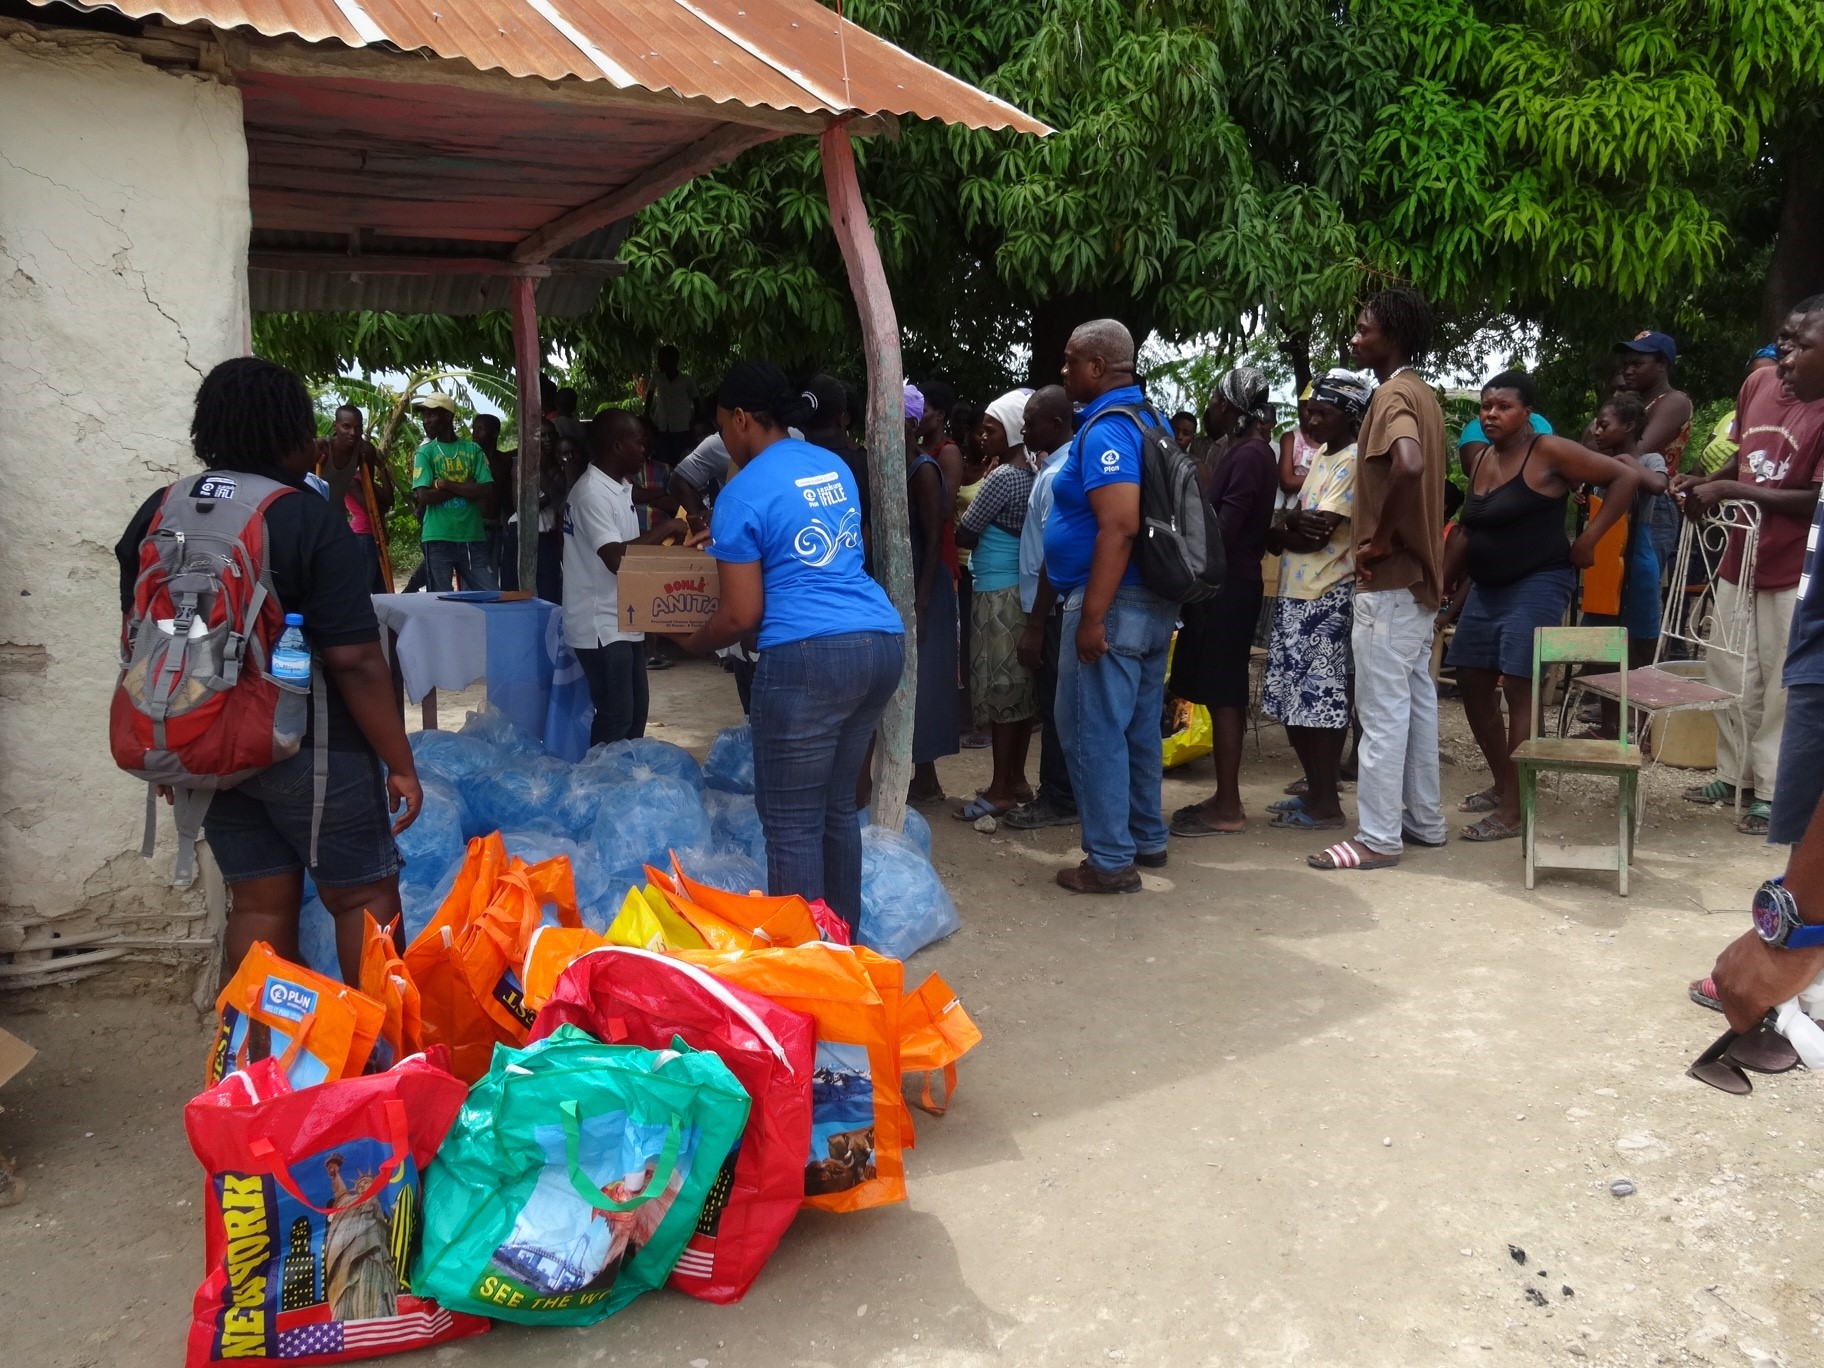 Plan International has been working to deliver aid to Haitians